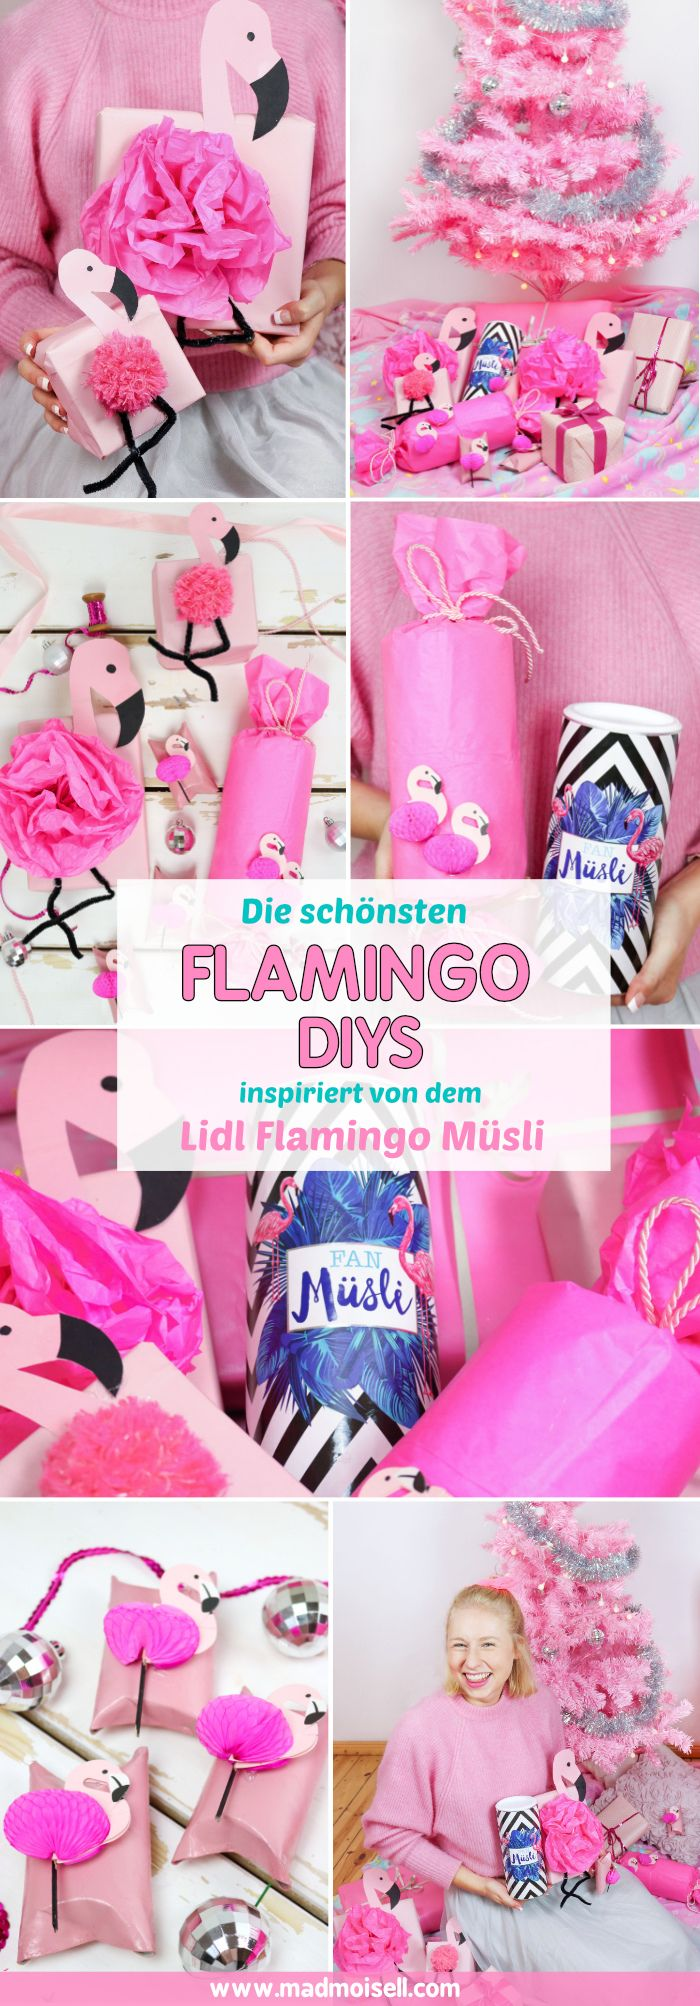 diy flamingo geschenkverpackung basteln 3 kreative geschenk ideen pinterest flamingo gift. Black Bedroom Furniture Sets. Home Design Ideas